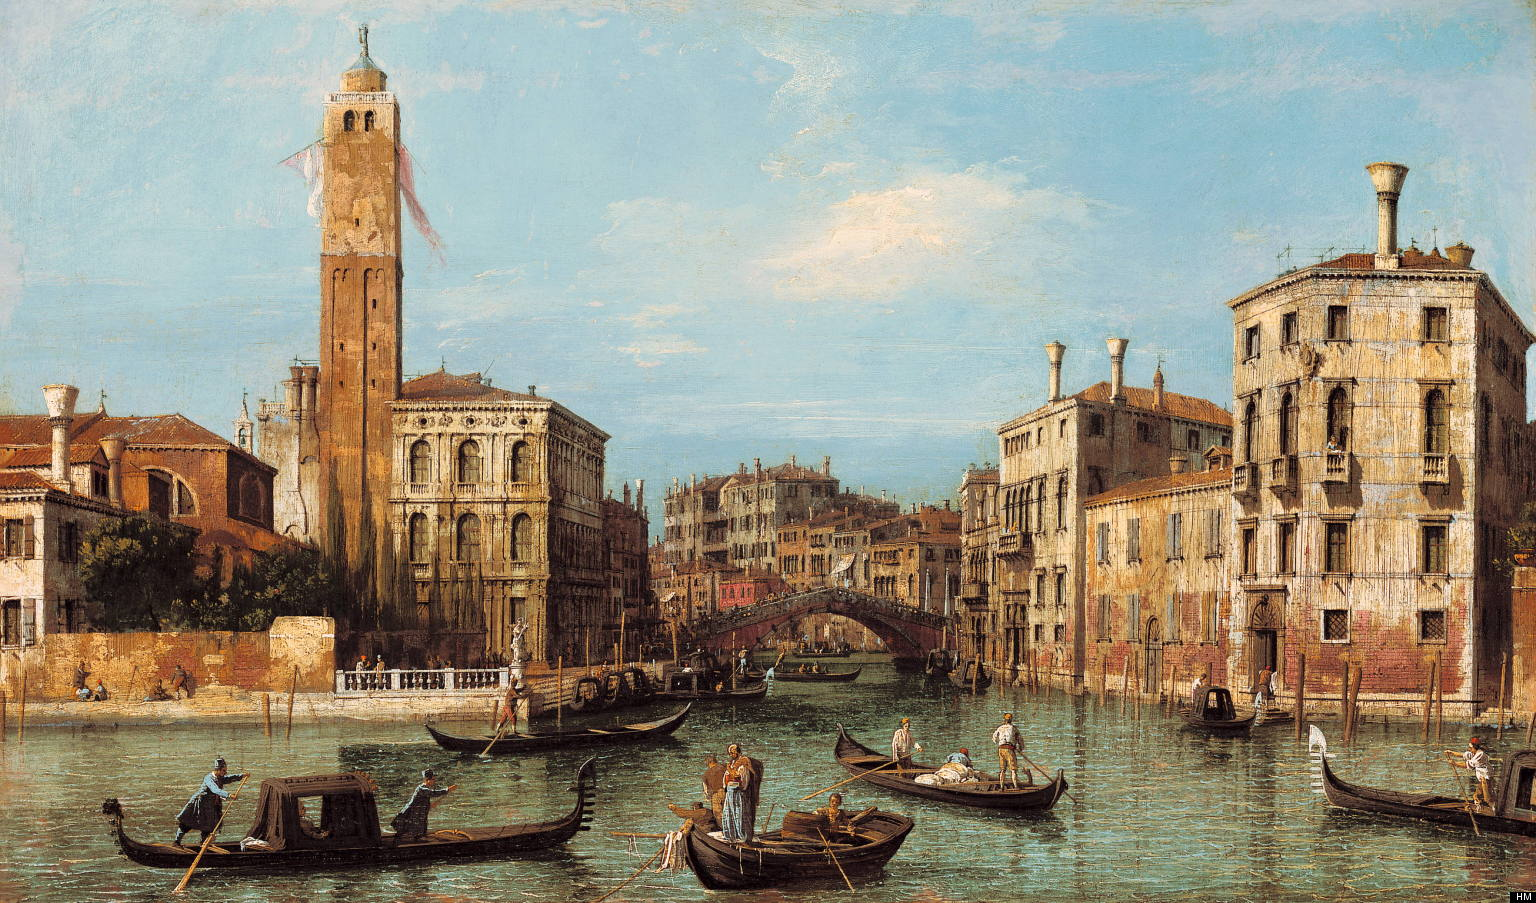 Canaletto, Place Saint Marc